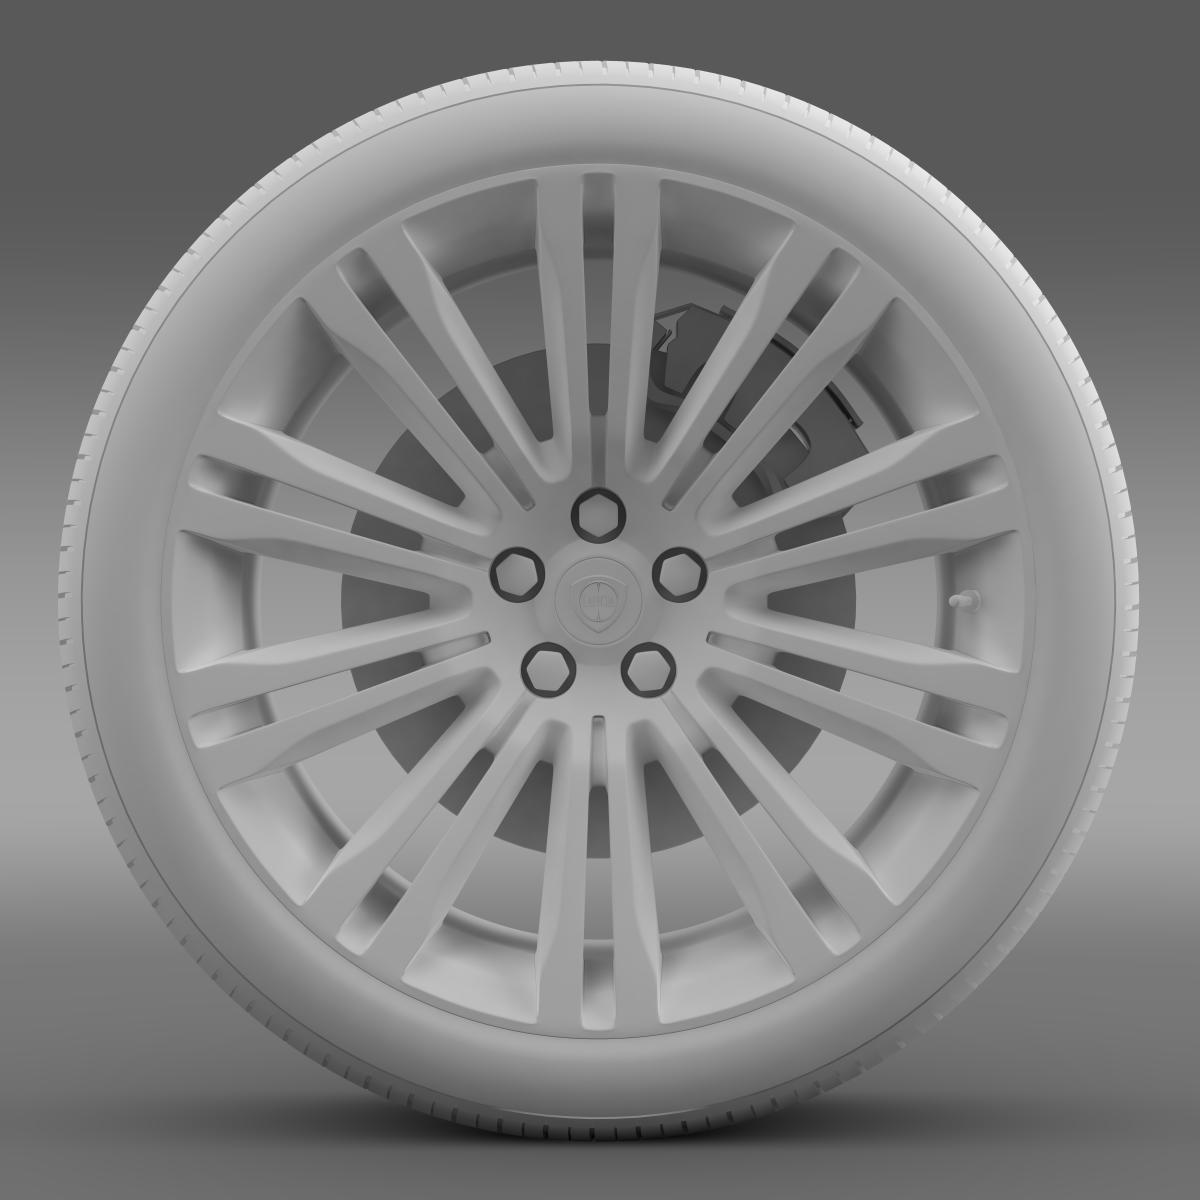 lancia thema 2014 wheel 3d model 3ds max fbx c4d lwo ma mb hrc xsi obj 210735